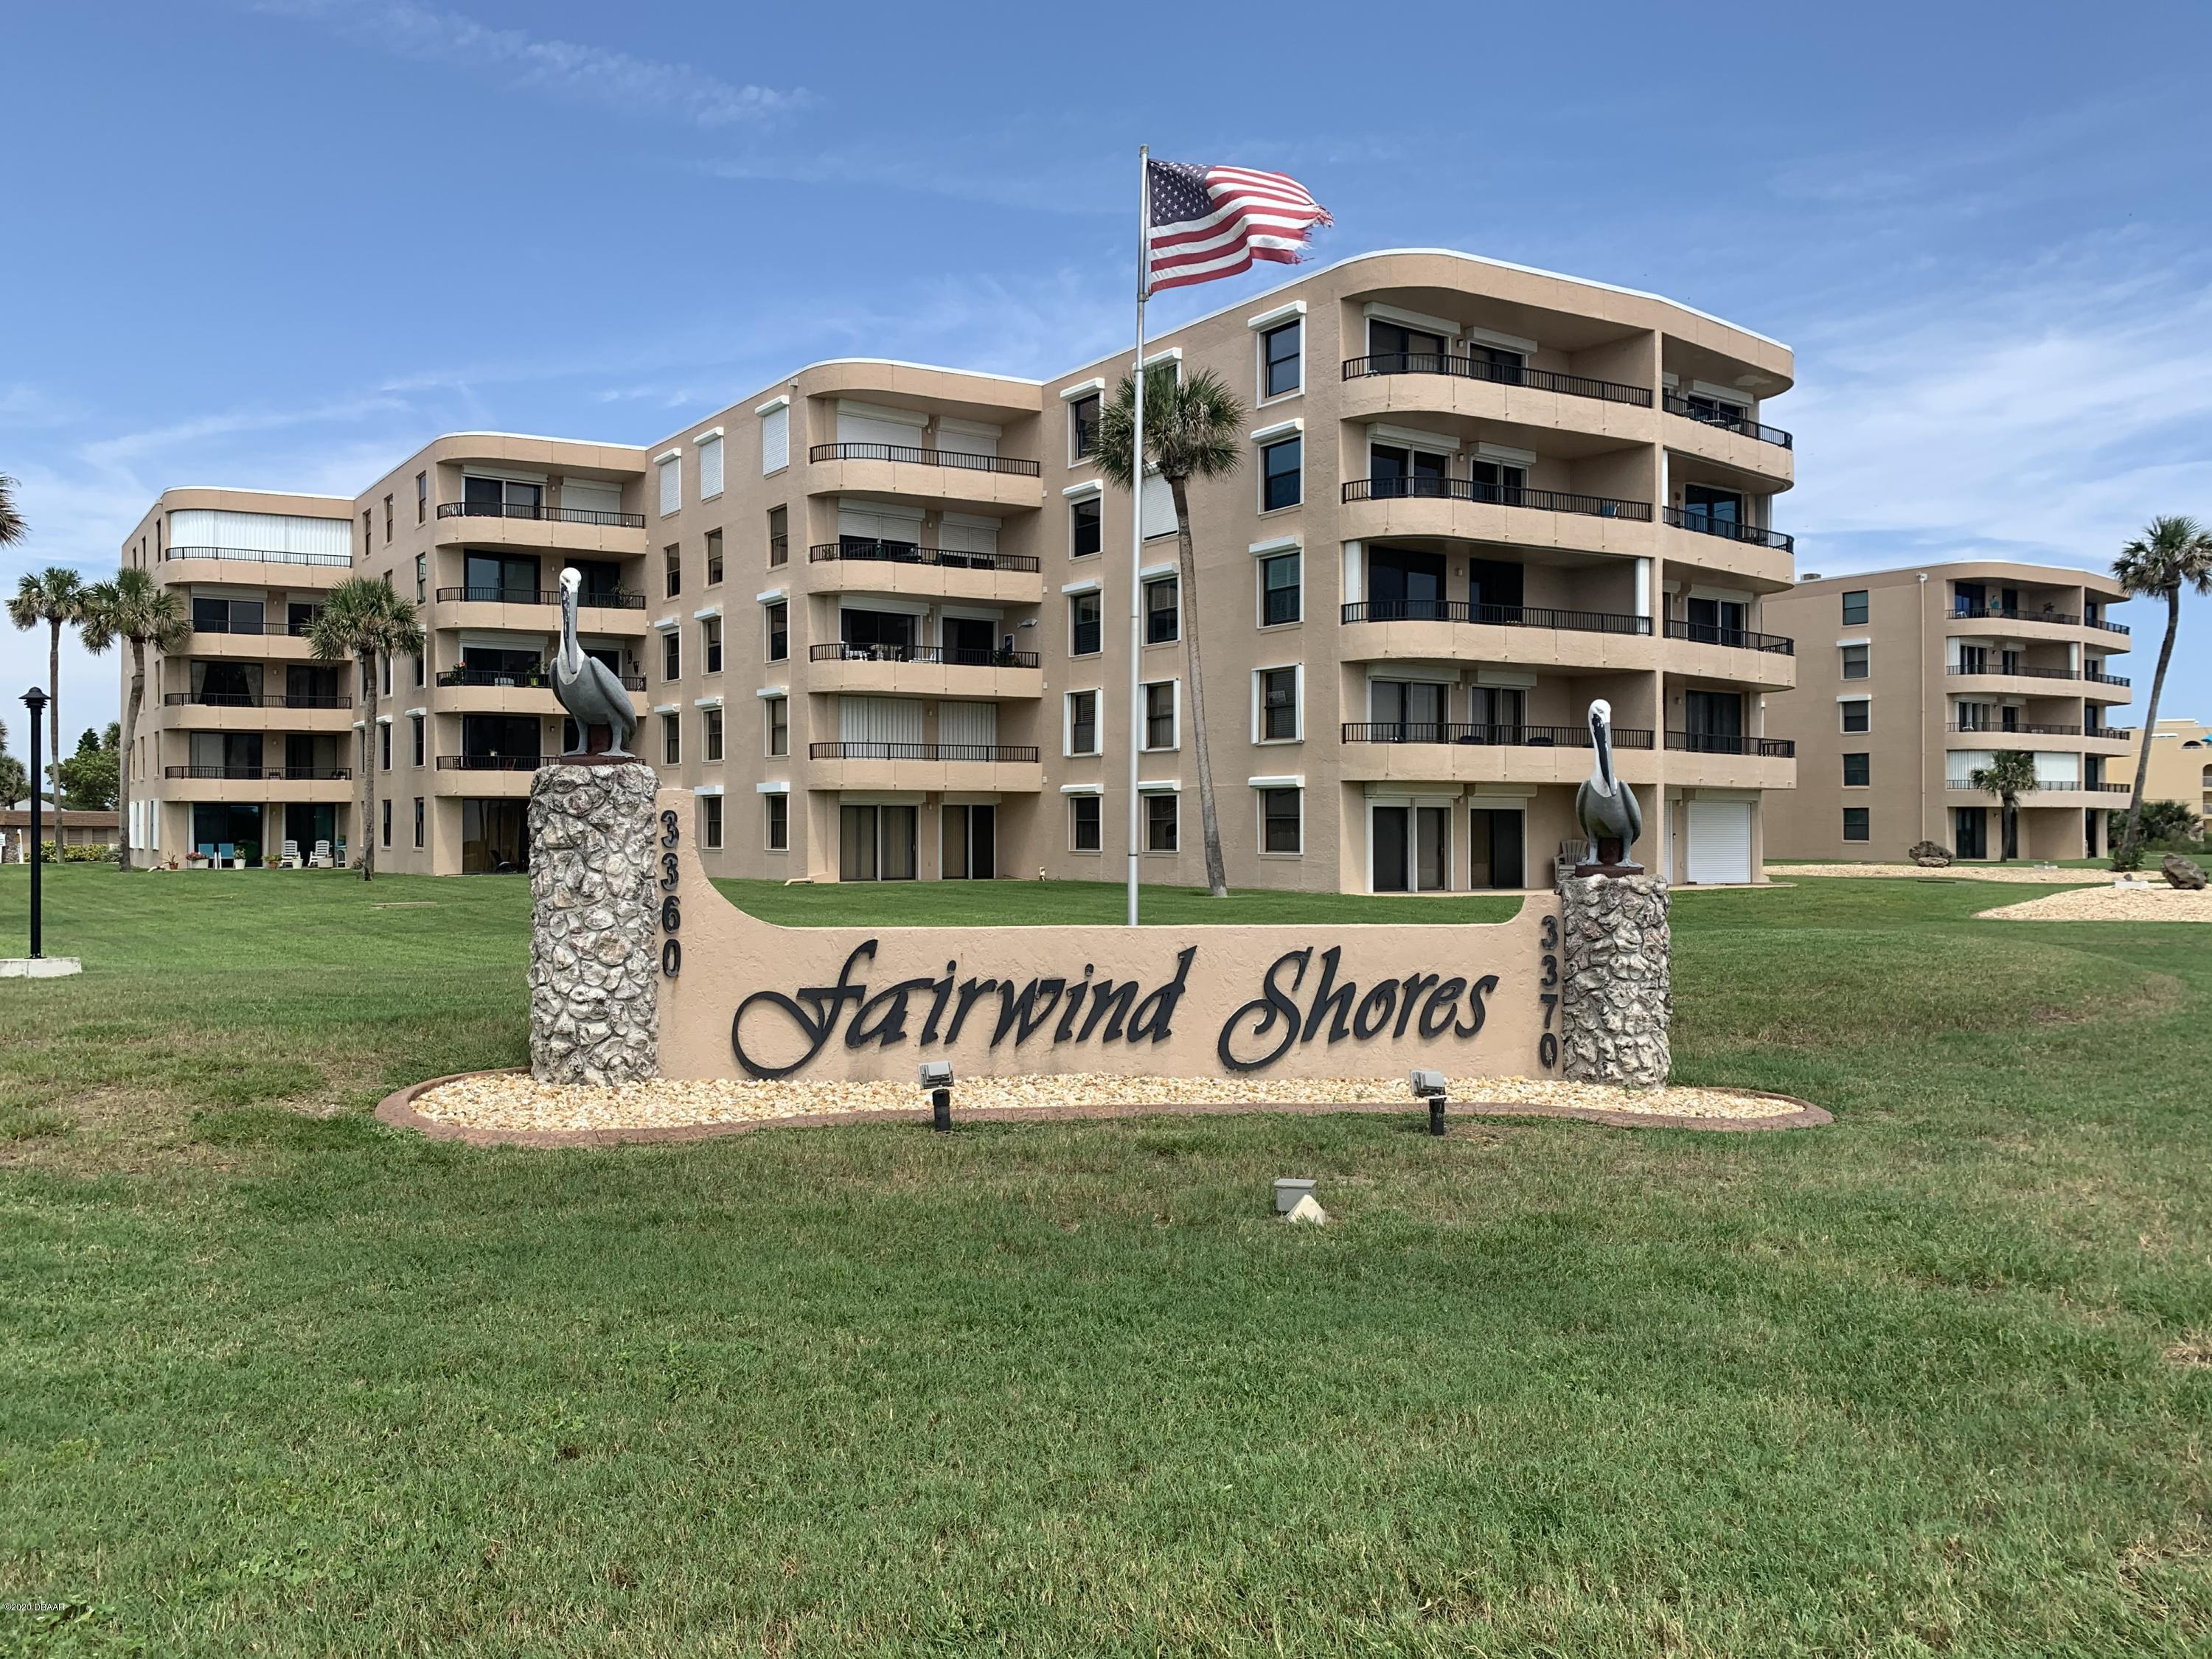 Details for 3360 Ocean Shore Boulevard 5030, Ormond Beach, FL 32176